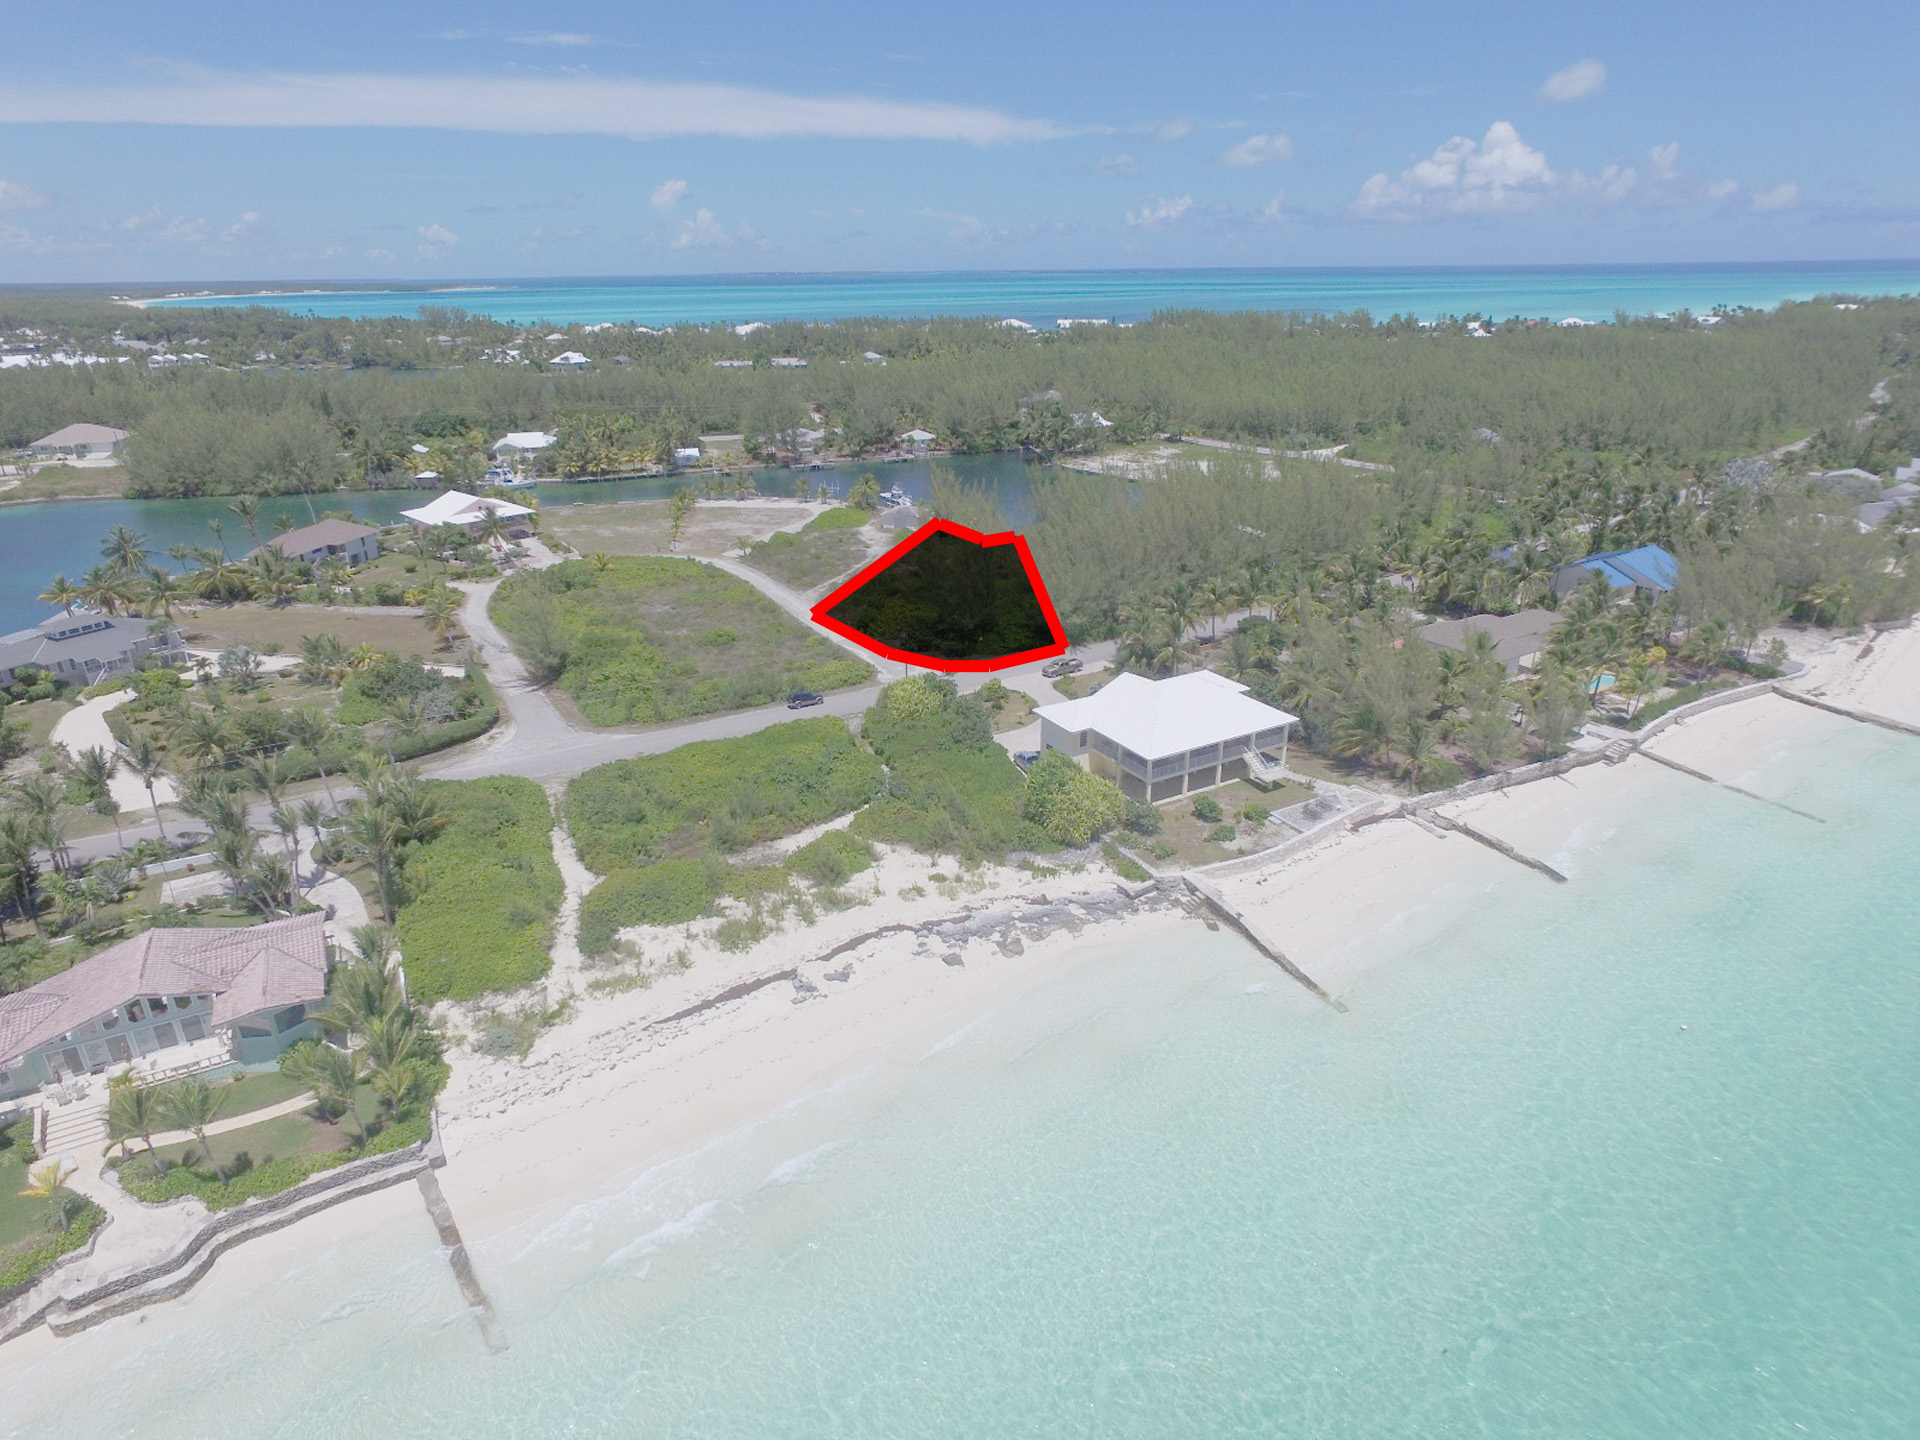 Land for Sale at Canal Lot, Treasure Cay, Abaco Island, Bahamas - MLS 26998 Treasure Cay, Abaco, Bahamas